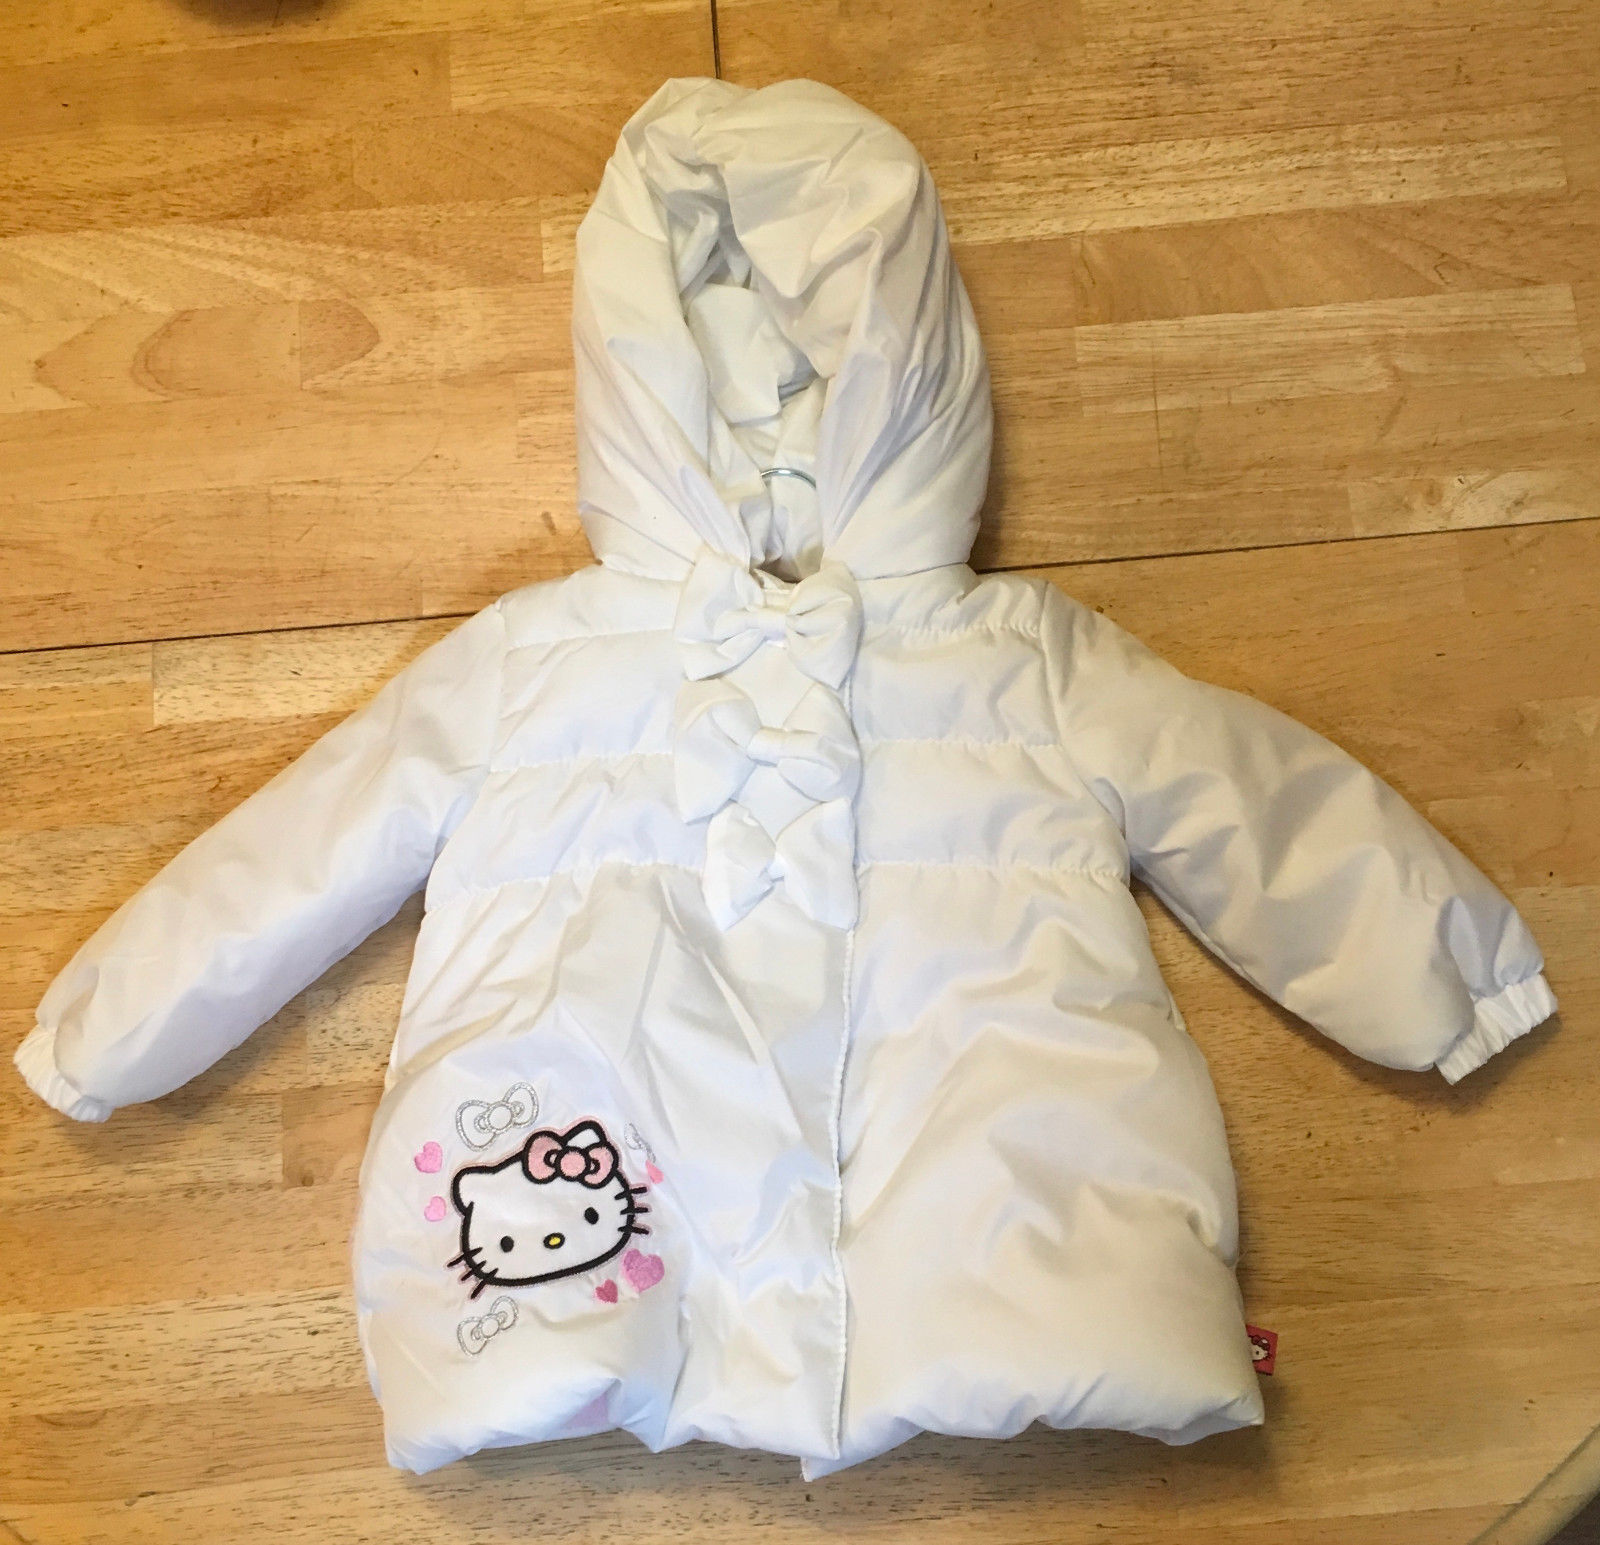 9d1084e5b Hello Kitty Baby's Puffer Jacket Size 18 Mos and 50 similar items.  Hellokittypufferjacket. Hellokittypufferjacket